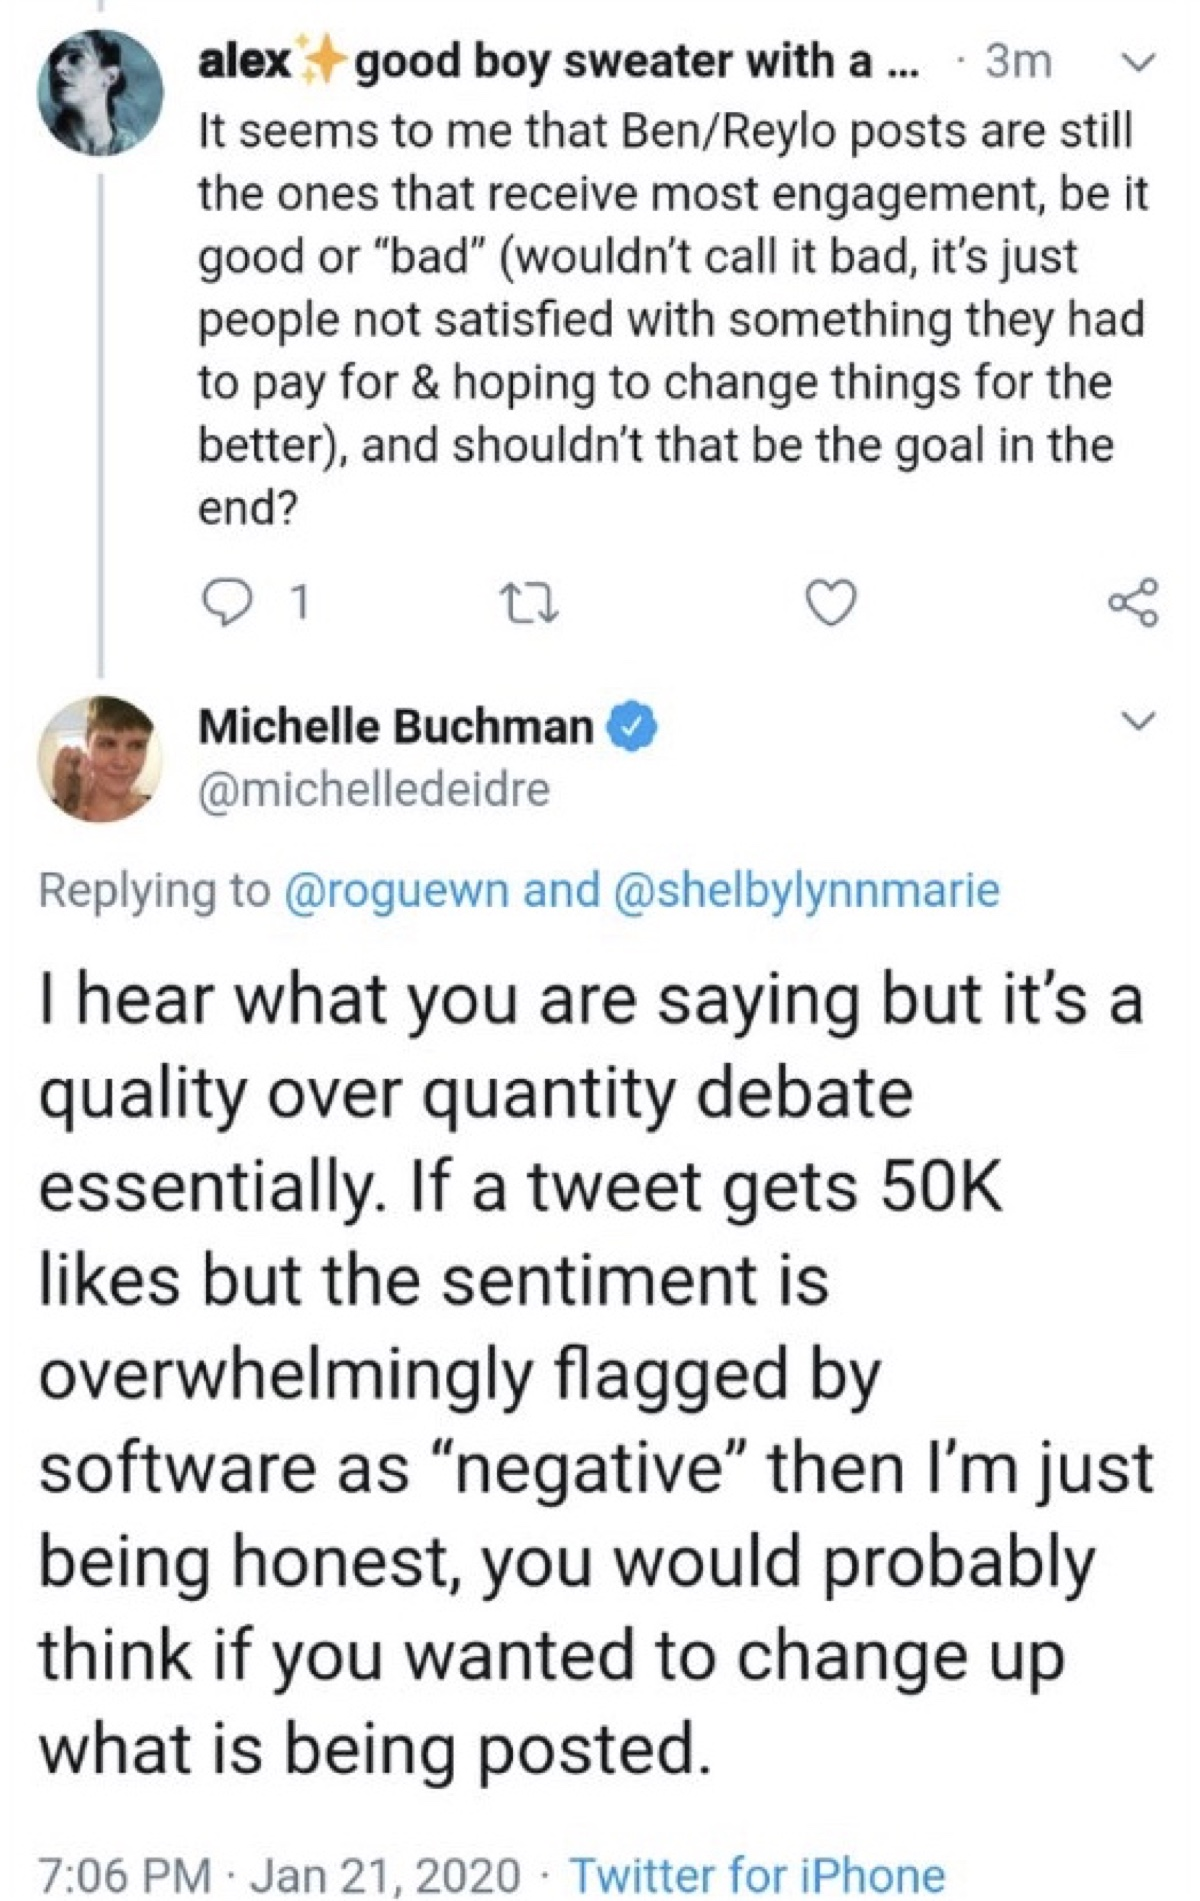 """Buchman said Reylo posts generate engagement that's overwhelmingly flagged by software as """"negative"""" (Twitter - @saltandrockets)"""